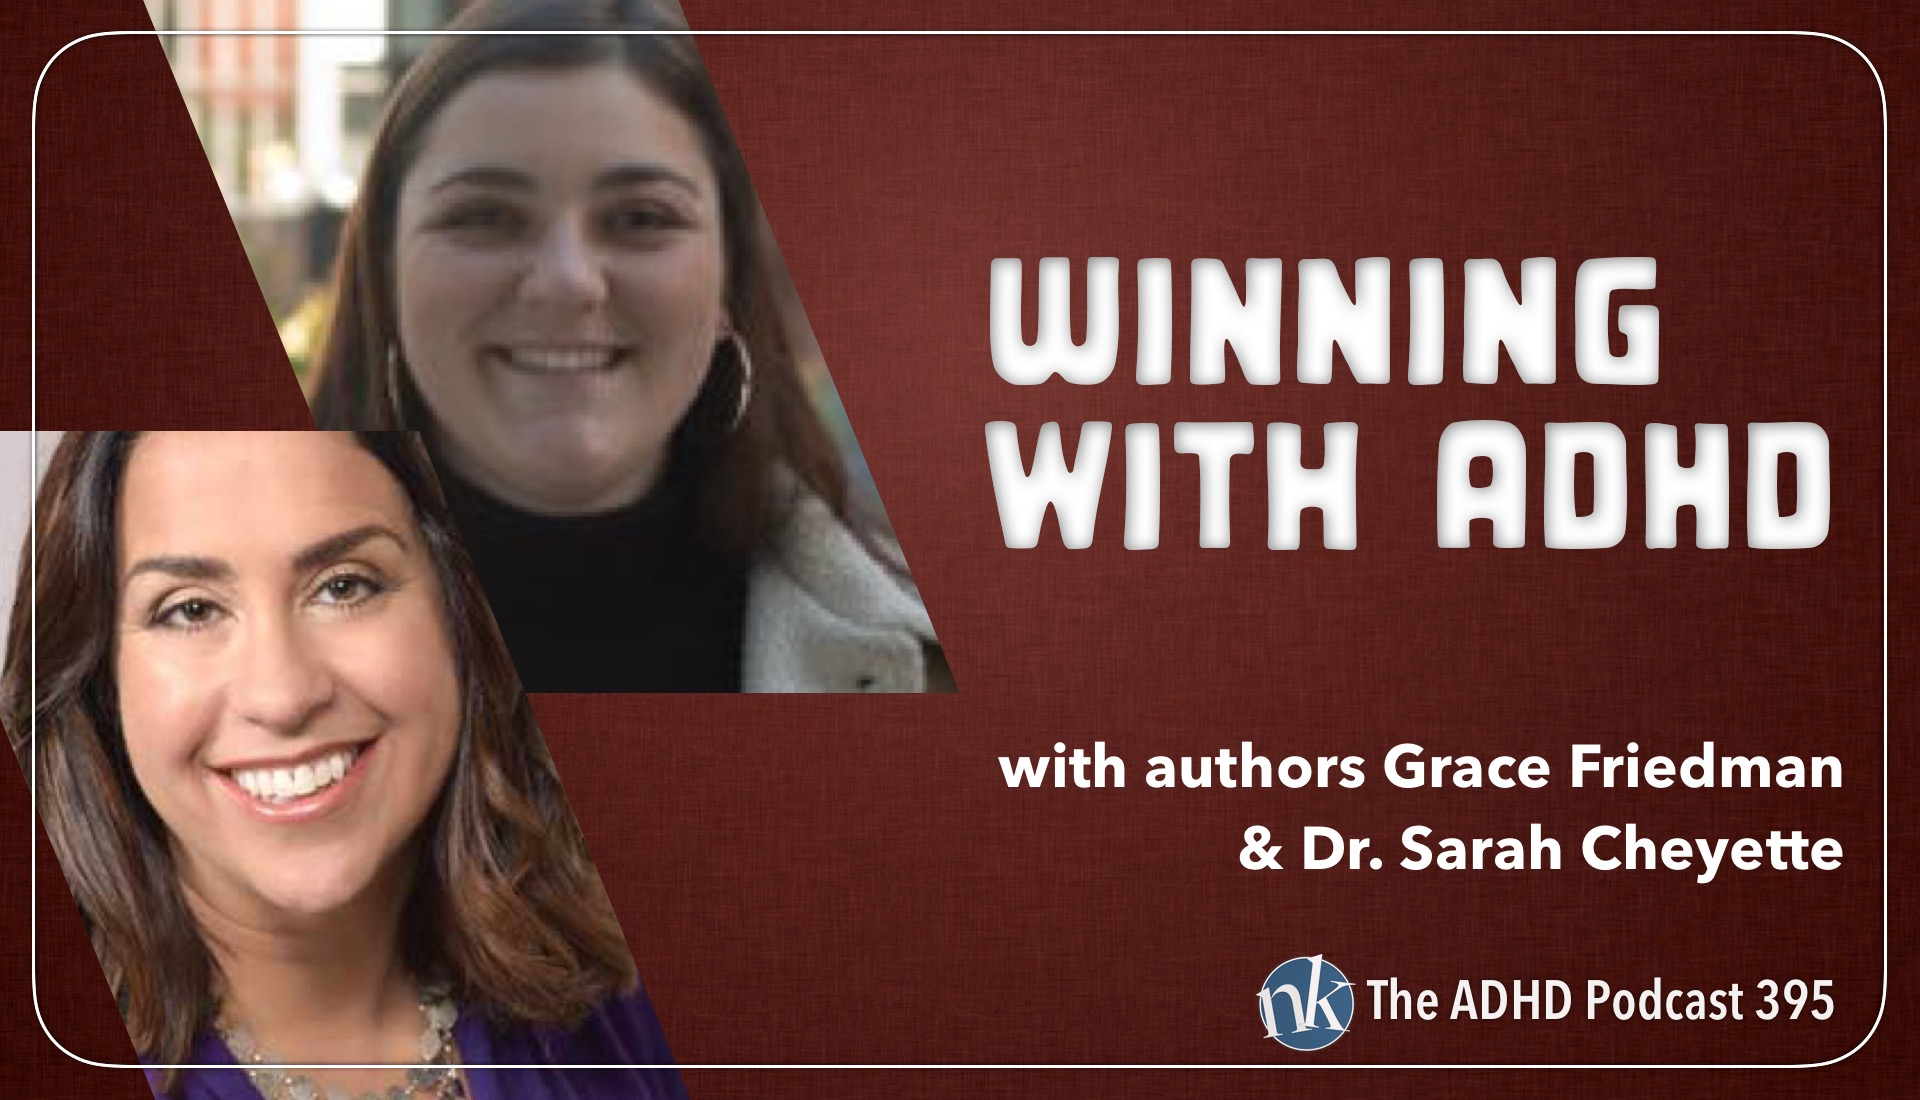 Winning with ADHD with authors Grace Friedman and Dr. Sarah Cheyette